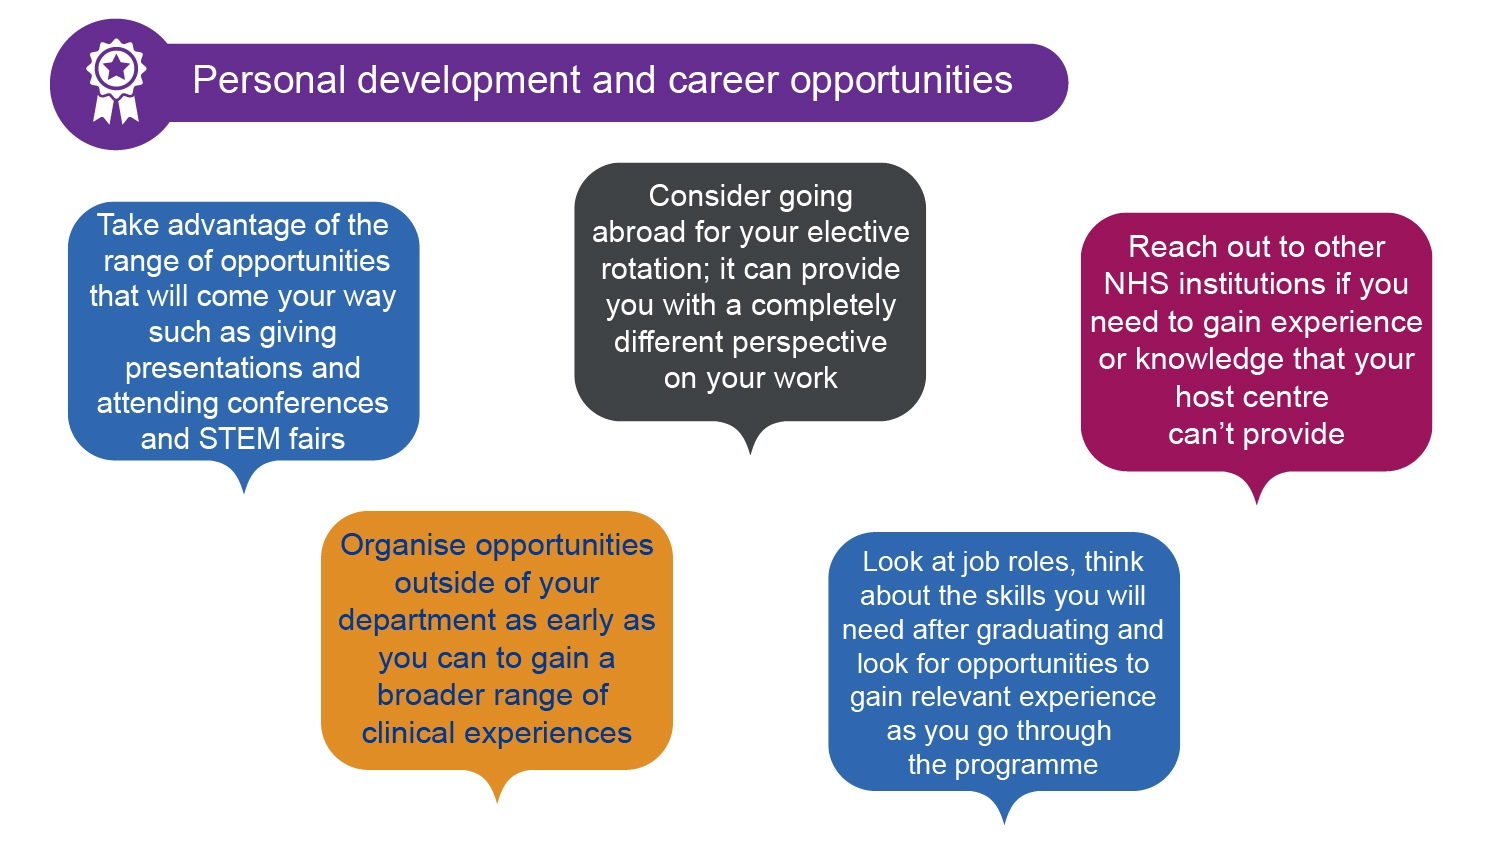 Image showing quotes from trainees regards personal development and careers